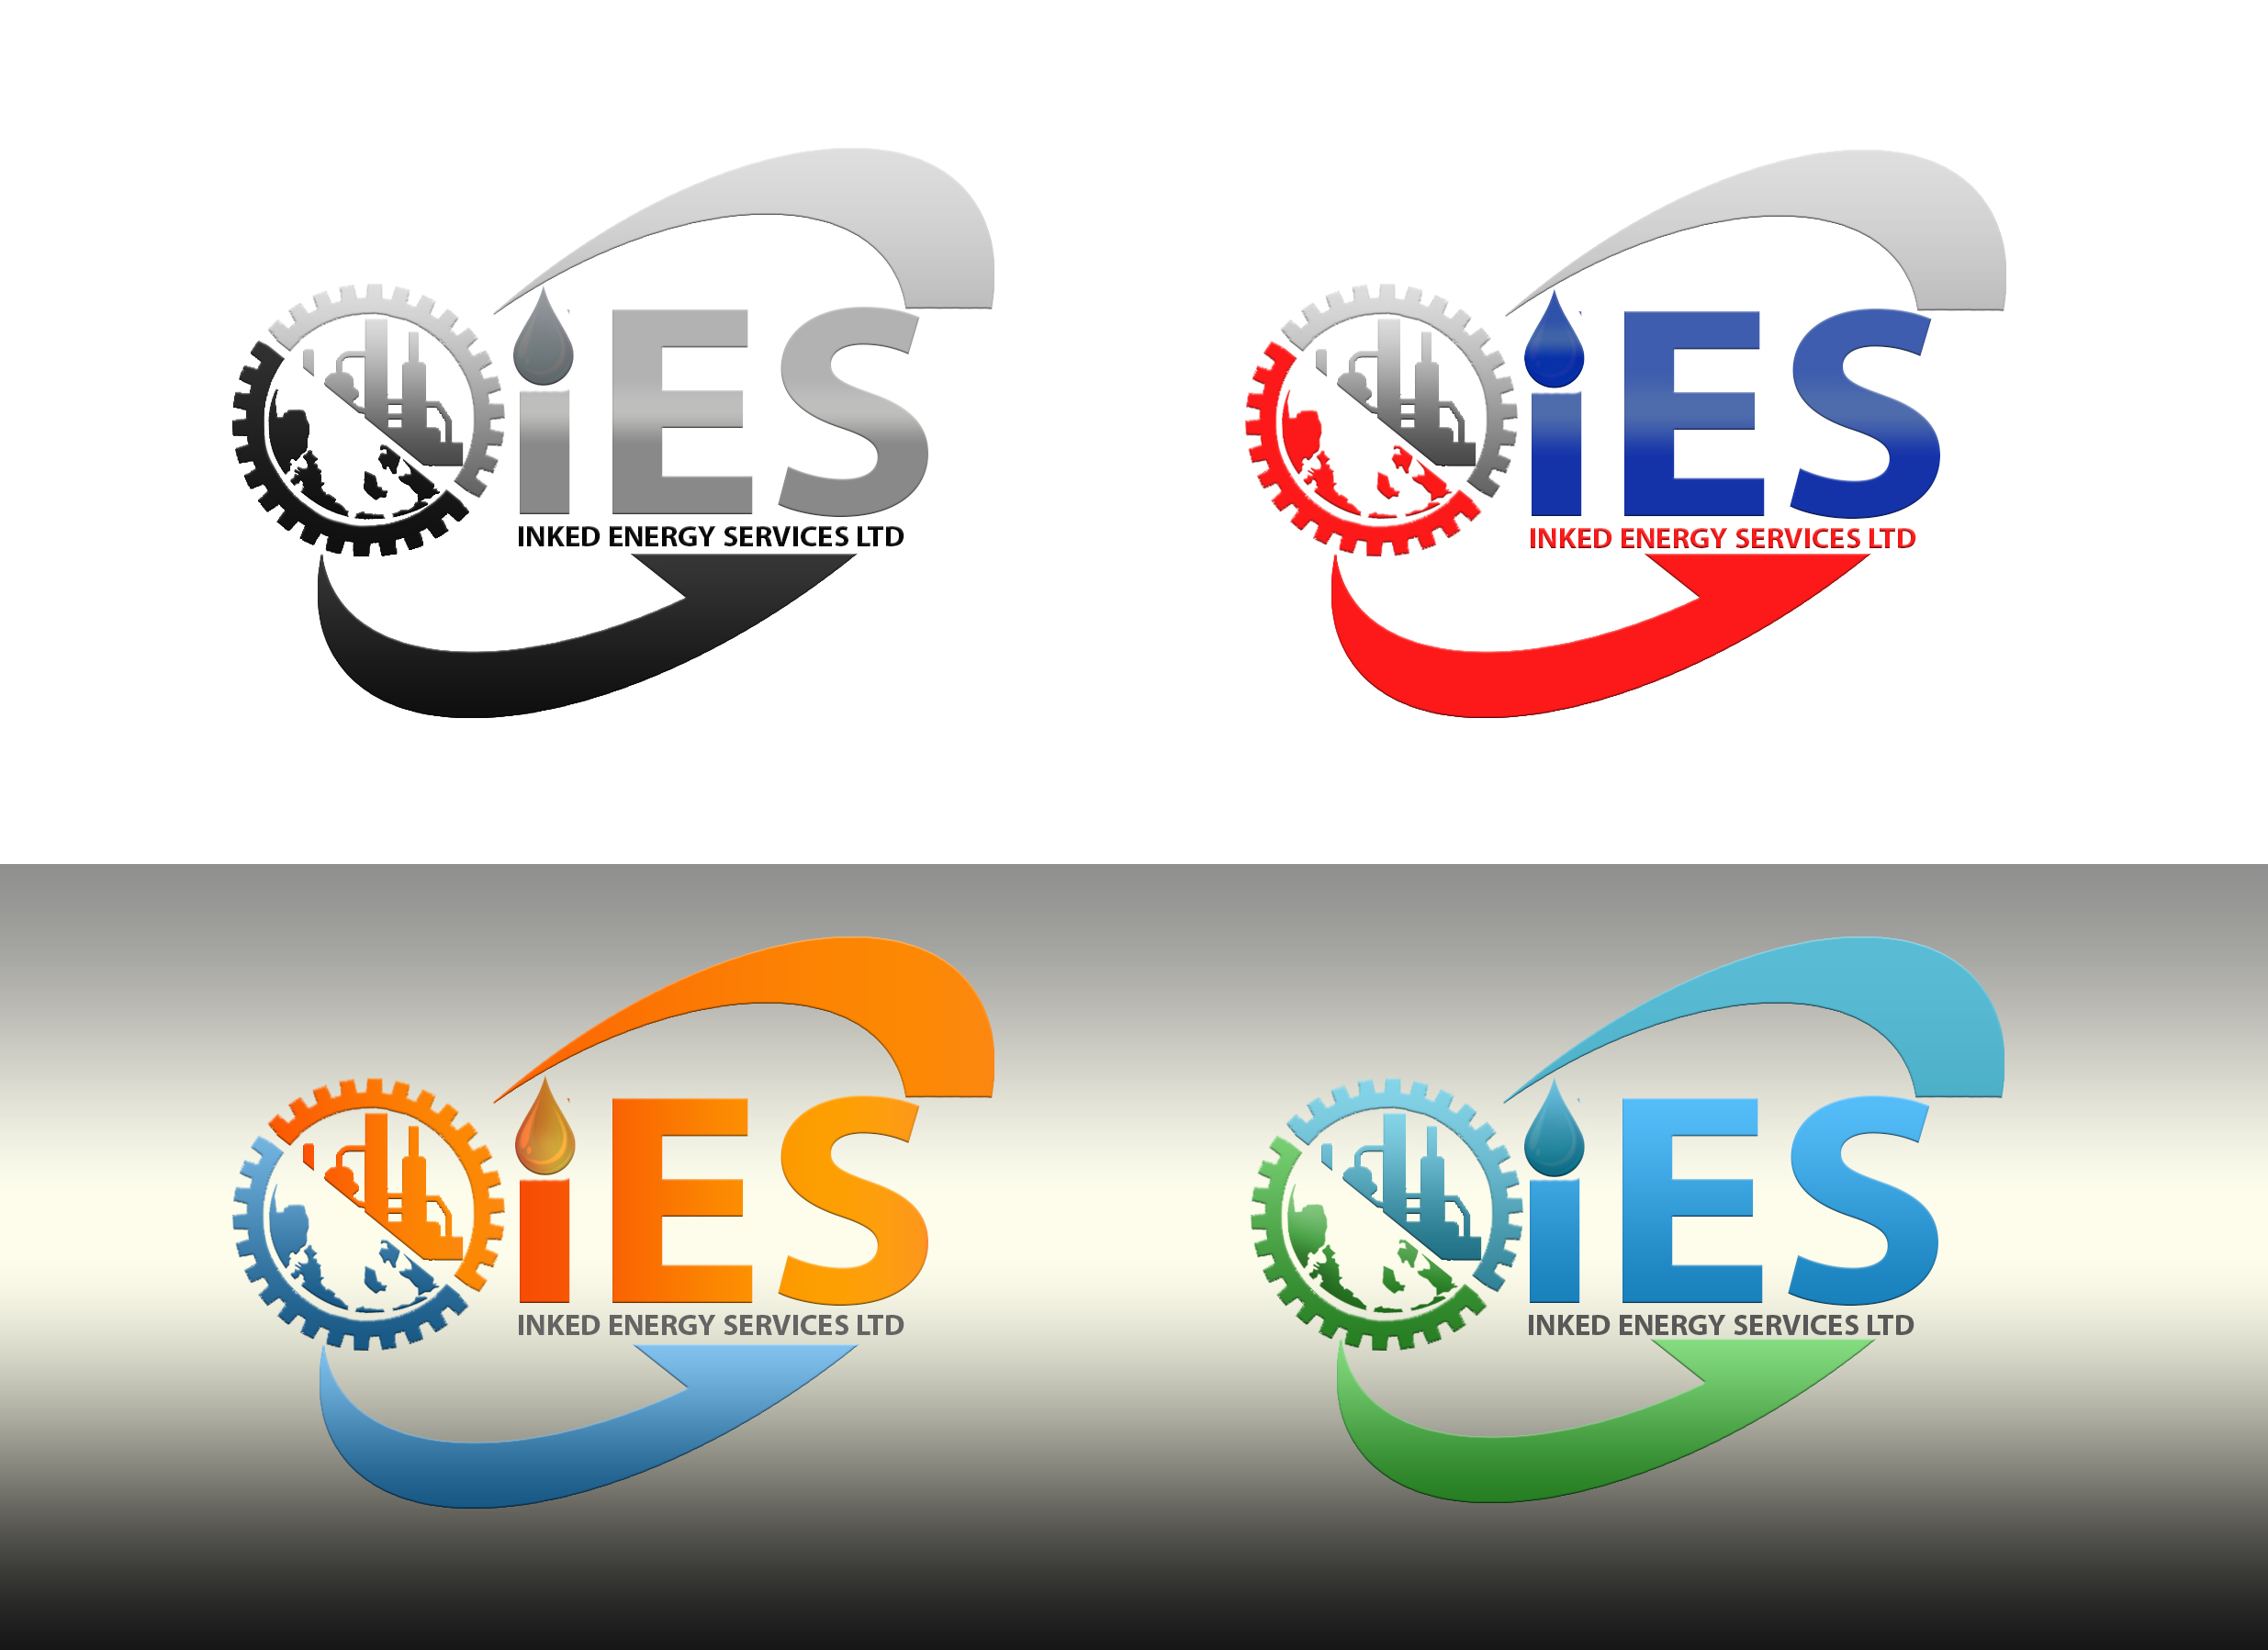 Logo Design by JSDESIGNGROUP - Entry No. 95 in the Logo Design Contest Creative Logo Design for INKED ENERGY SERVICES LTD.